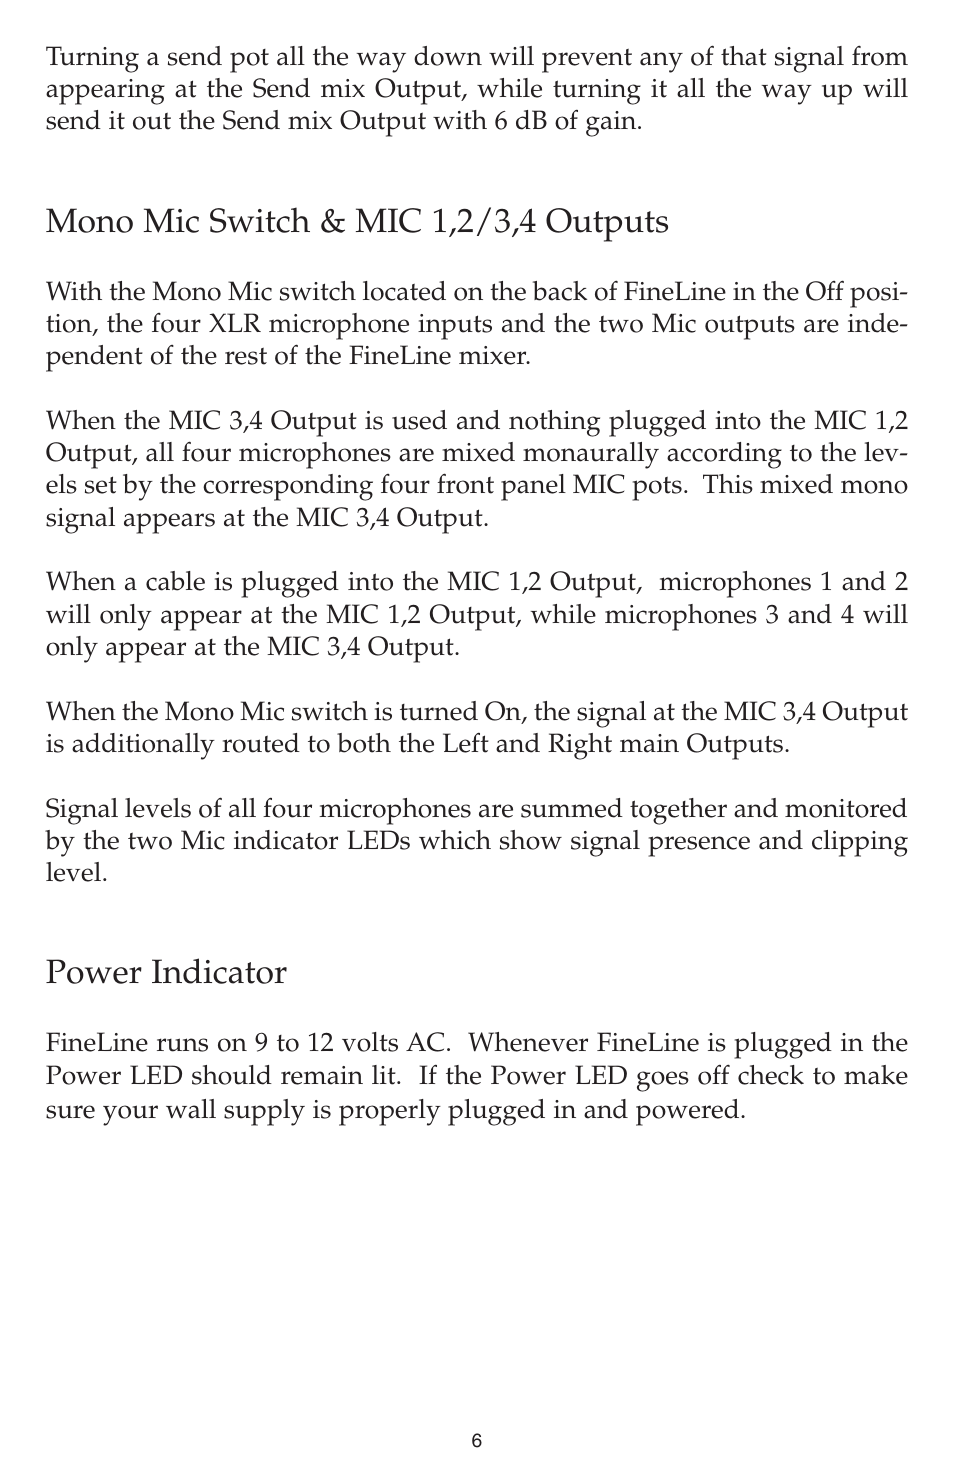 Mono Mic Switch 12 34 Outputs Power Indicator M Audio 3 Way Both Down Fineline User Manual Page 6 16